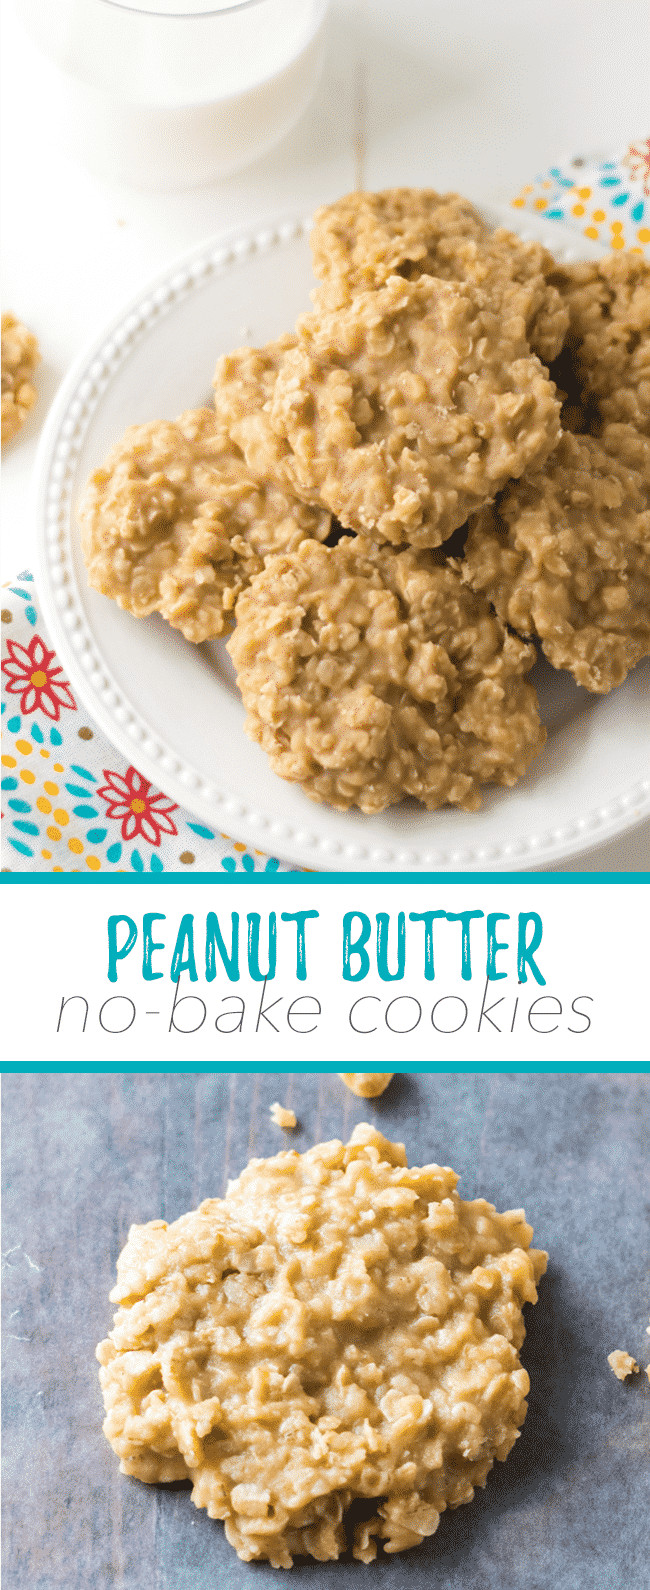 No Butter Cookies  peanut butter no bake cookies with quick oats